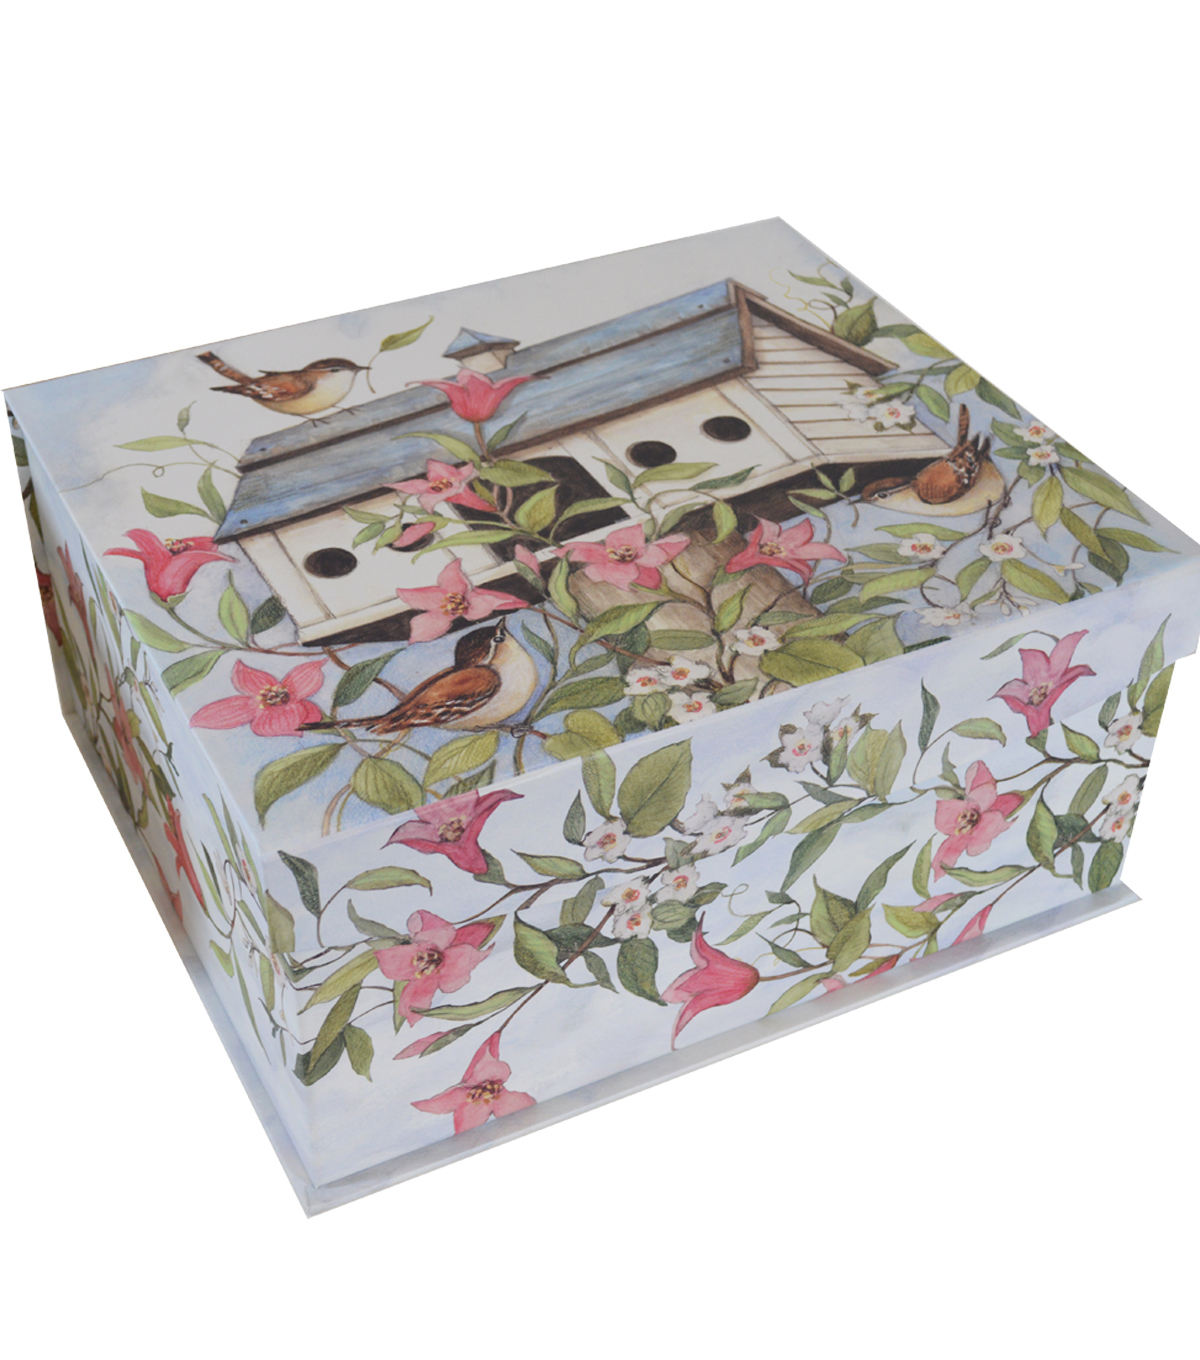 Organizing Essentials Large Flip Top Box-Birdhouse & Flowers